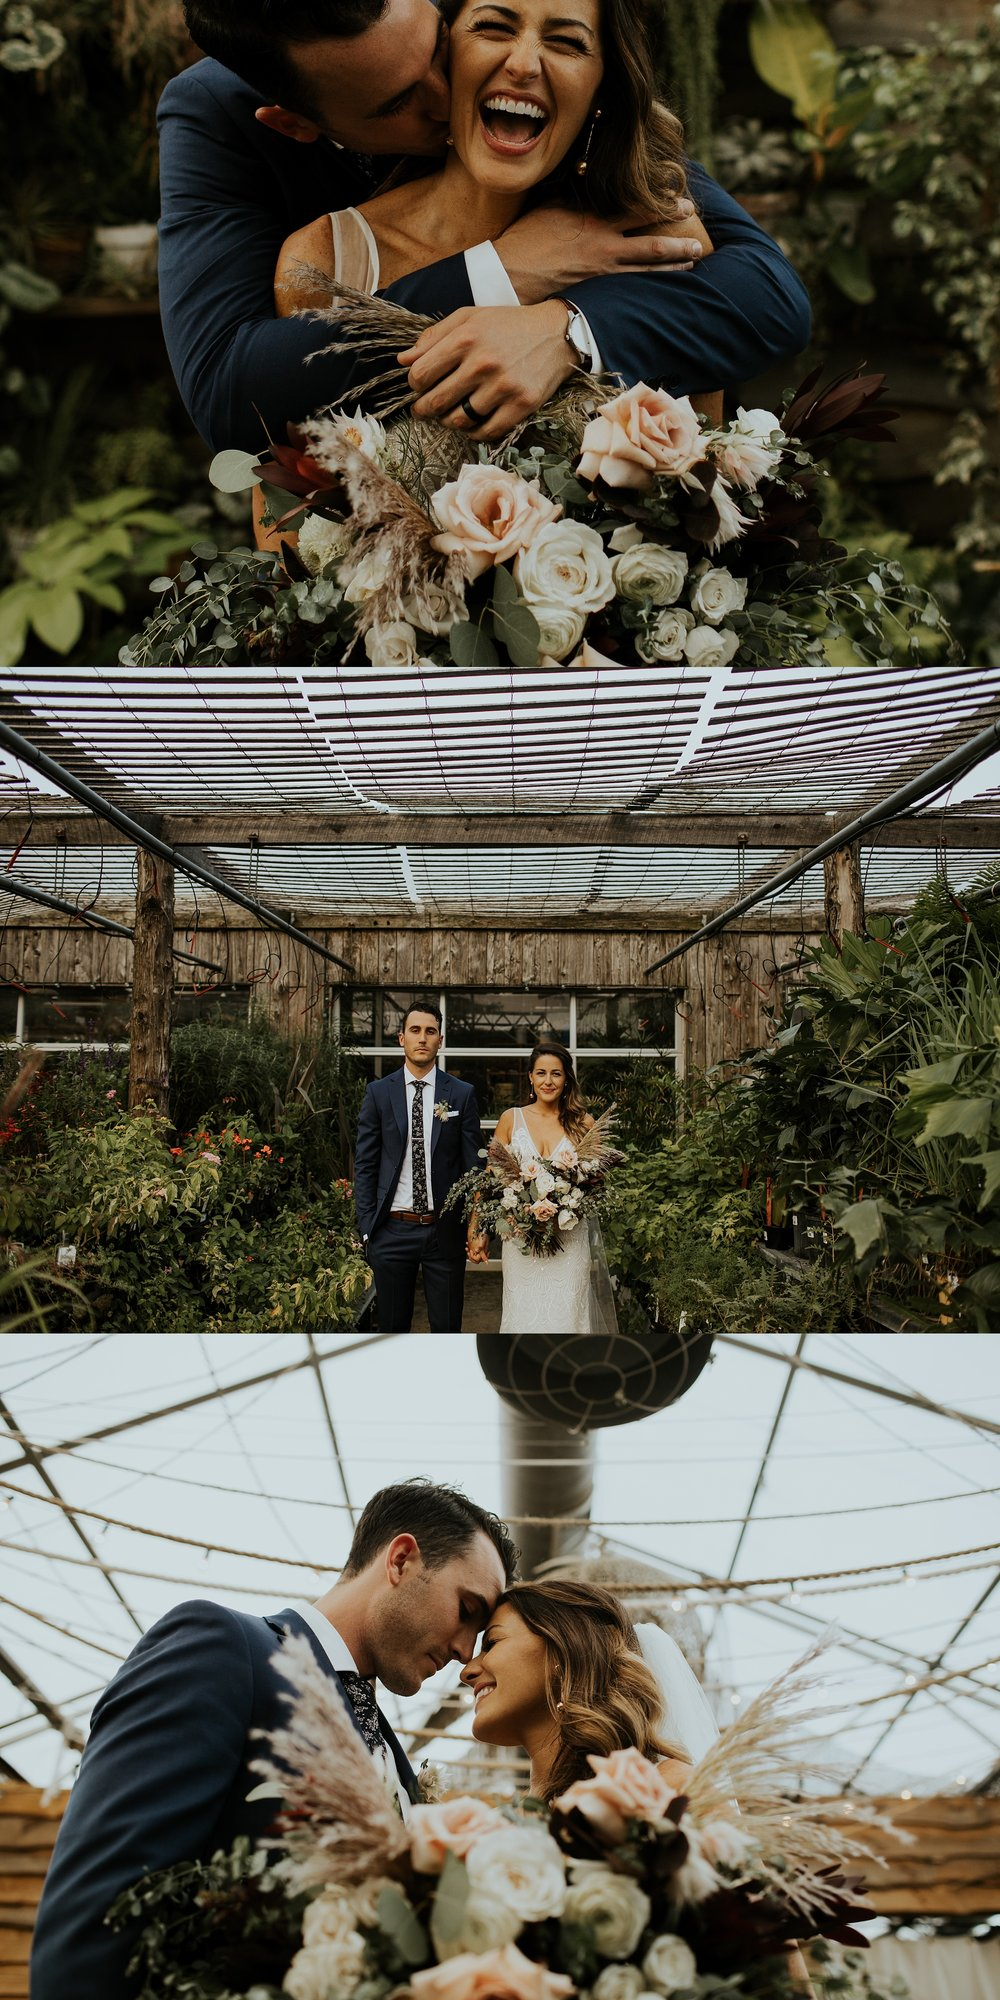 Heartfelt Botanical Terrain at Styers Wedding in Glenn Mills Pennslyvania by Trin Jensen Photography_0040.jpg